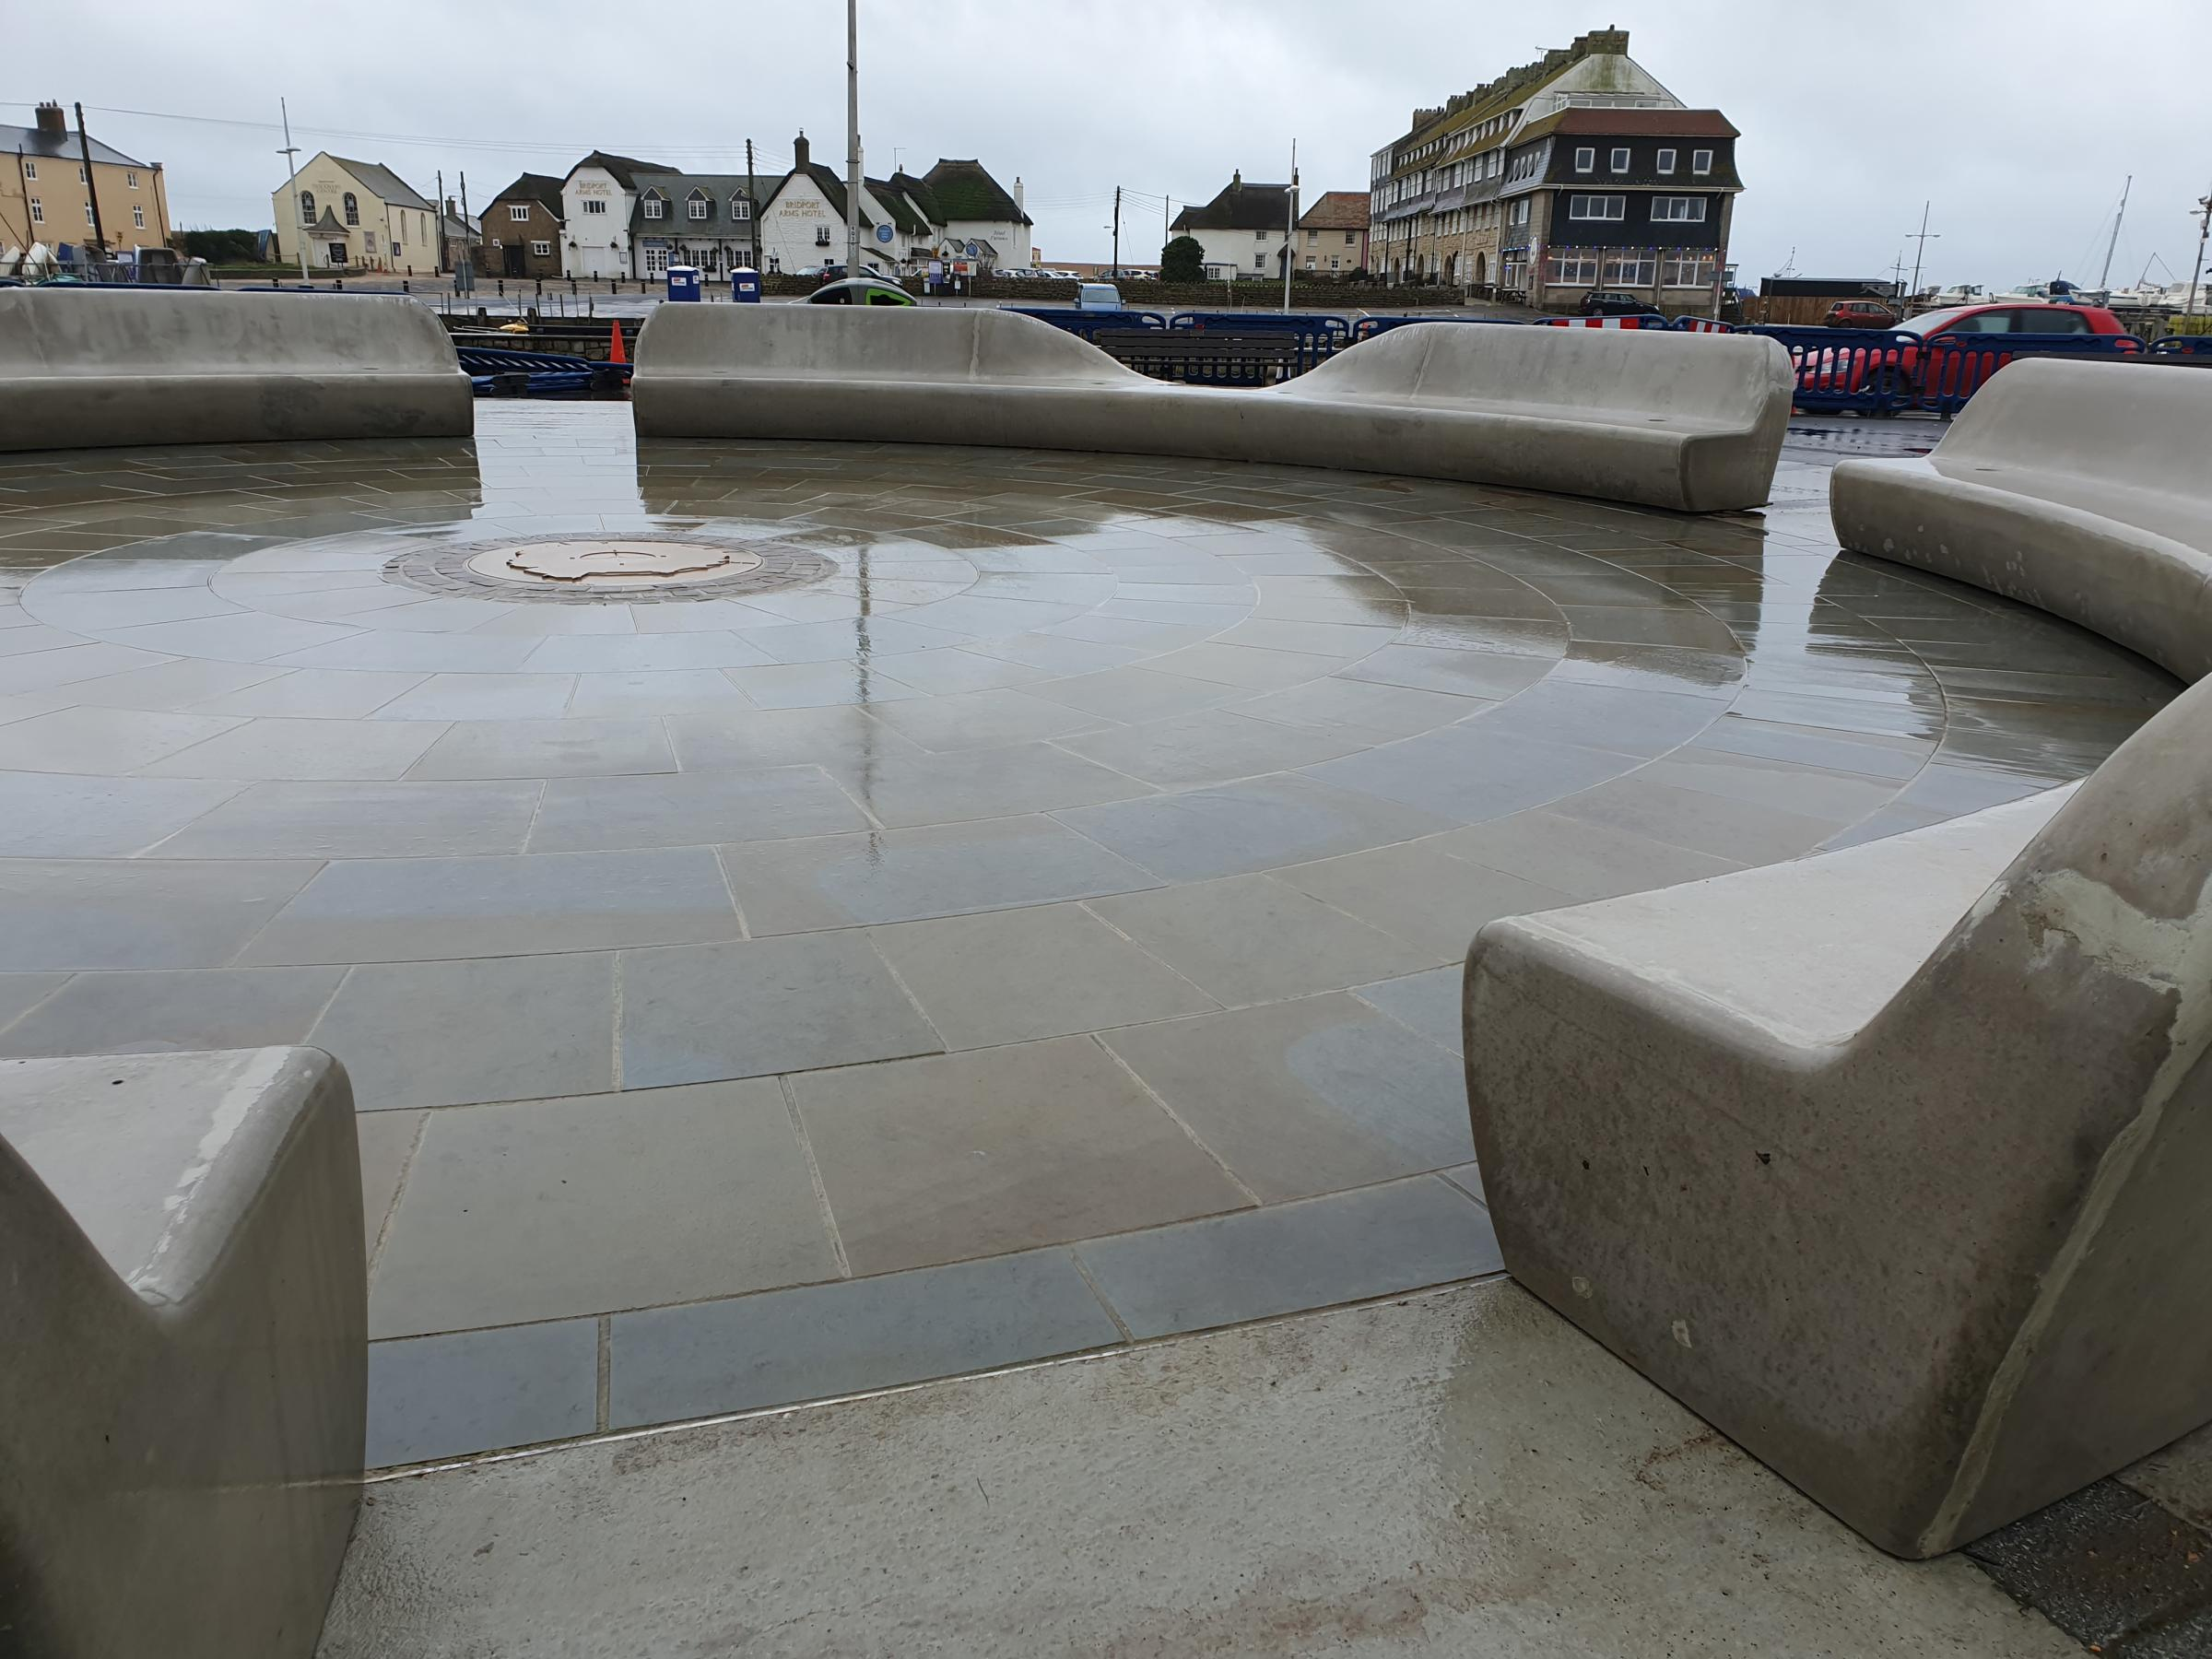 """Divided opinion over West Bay's """"edgy"""" new benches"""